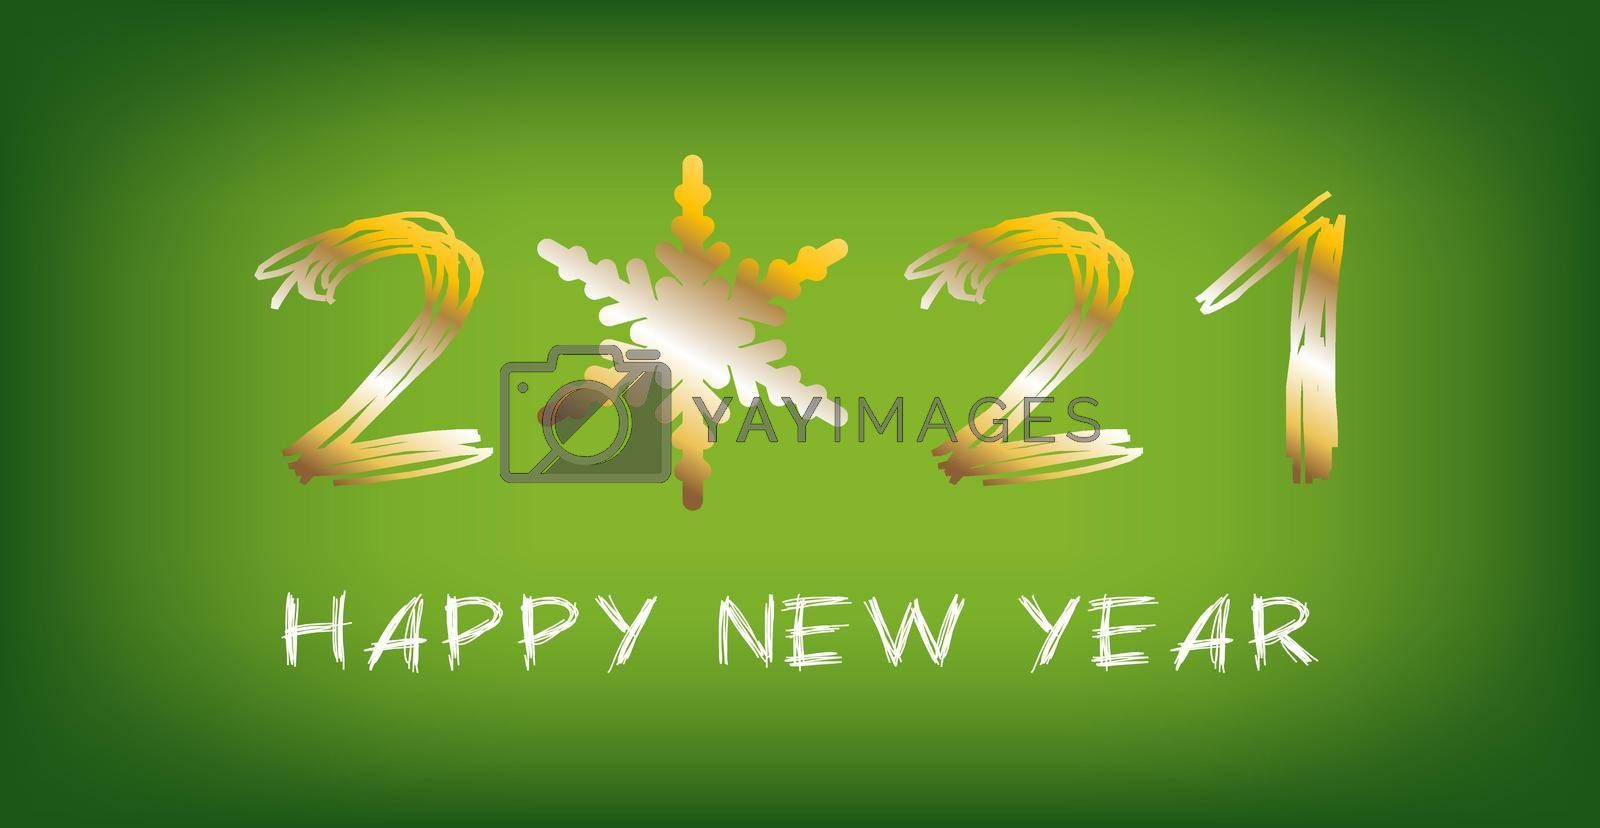 2021 Happy new year!  Holiday greeting card. Holiday design for greeting card, invitation, calendar, etc. illustration - Vector.